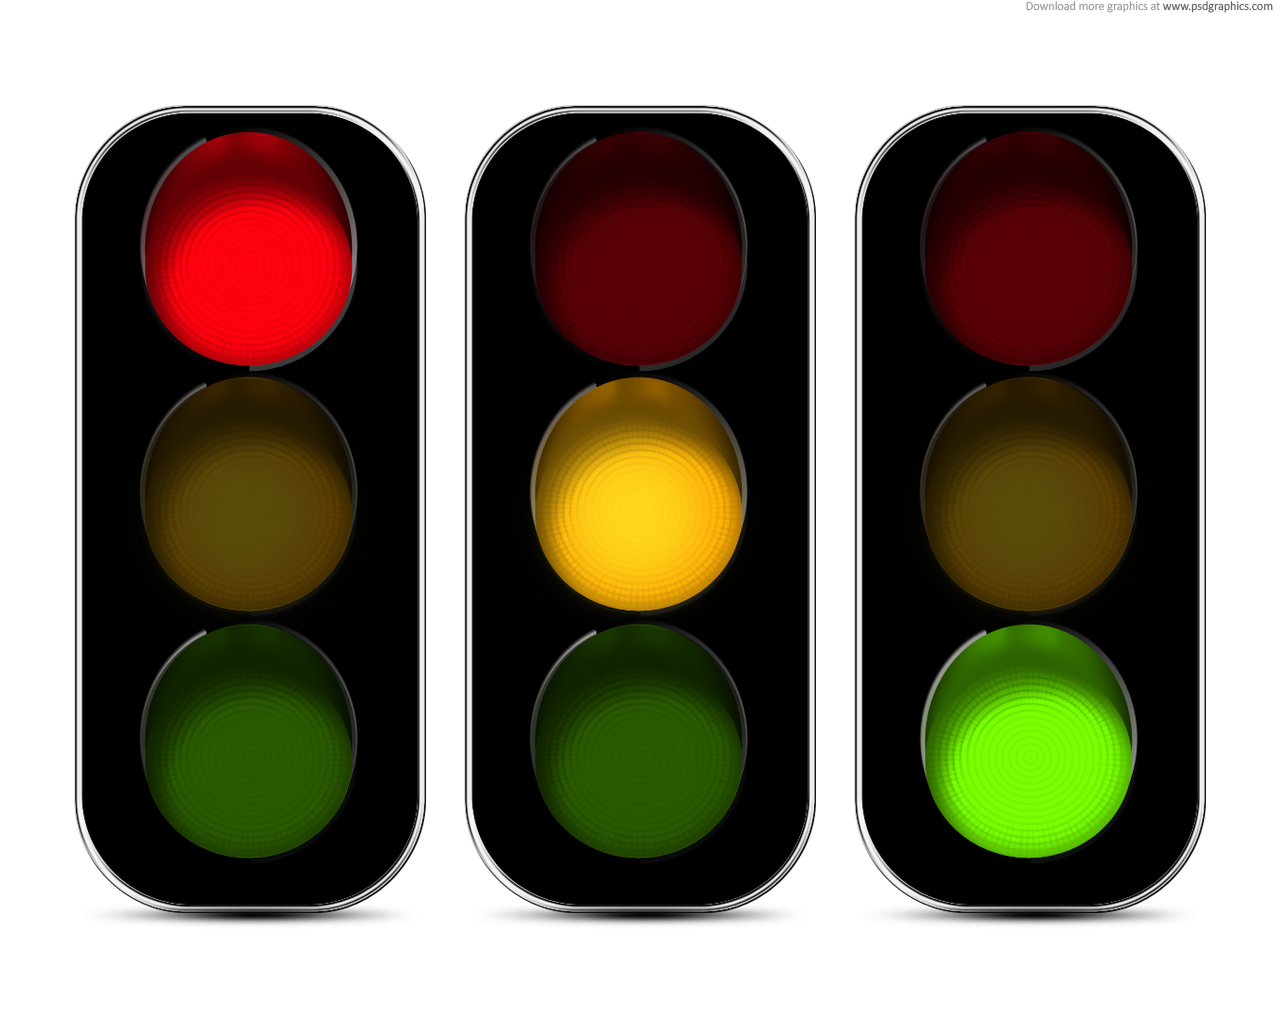 Red Stop Light - ClipArt Best